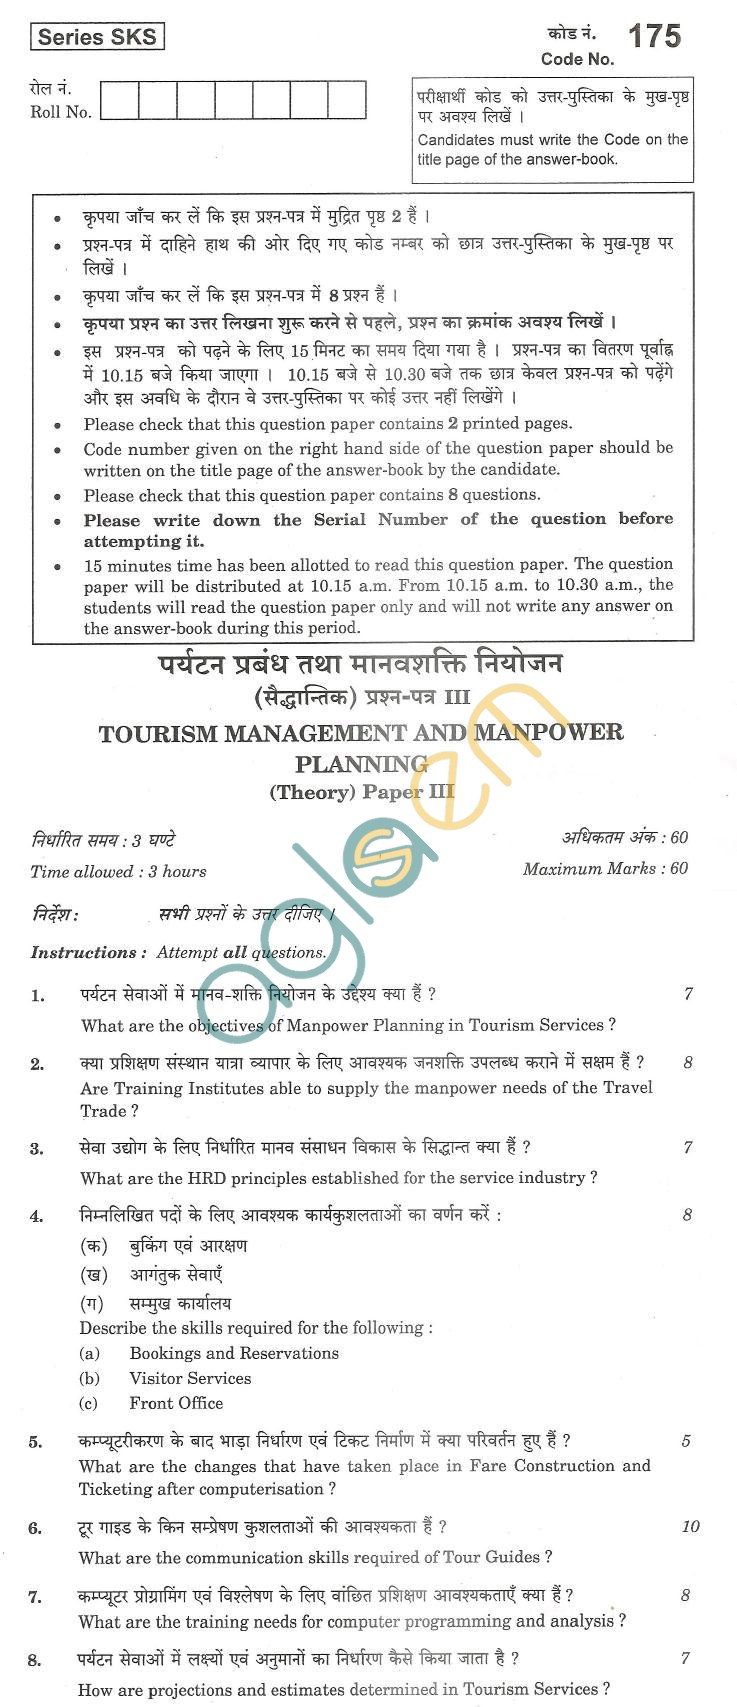 CBSE Board Exam 2013 Class XII Question Paper - Tourism Management And Manpower